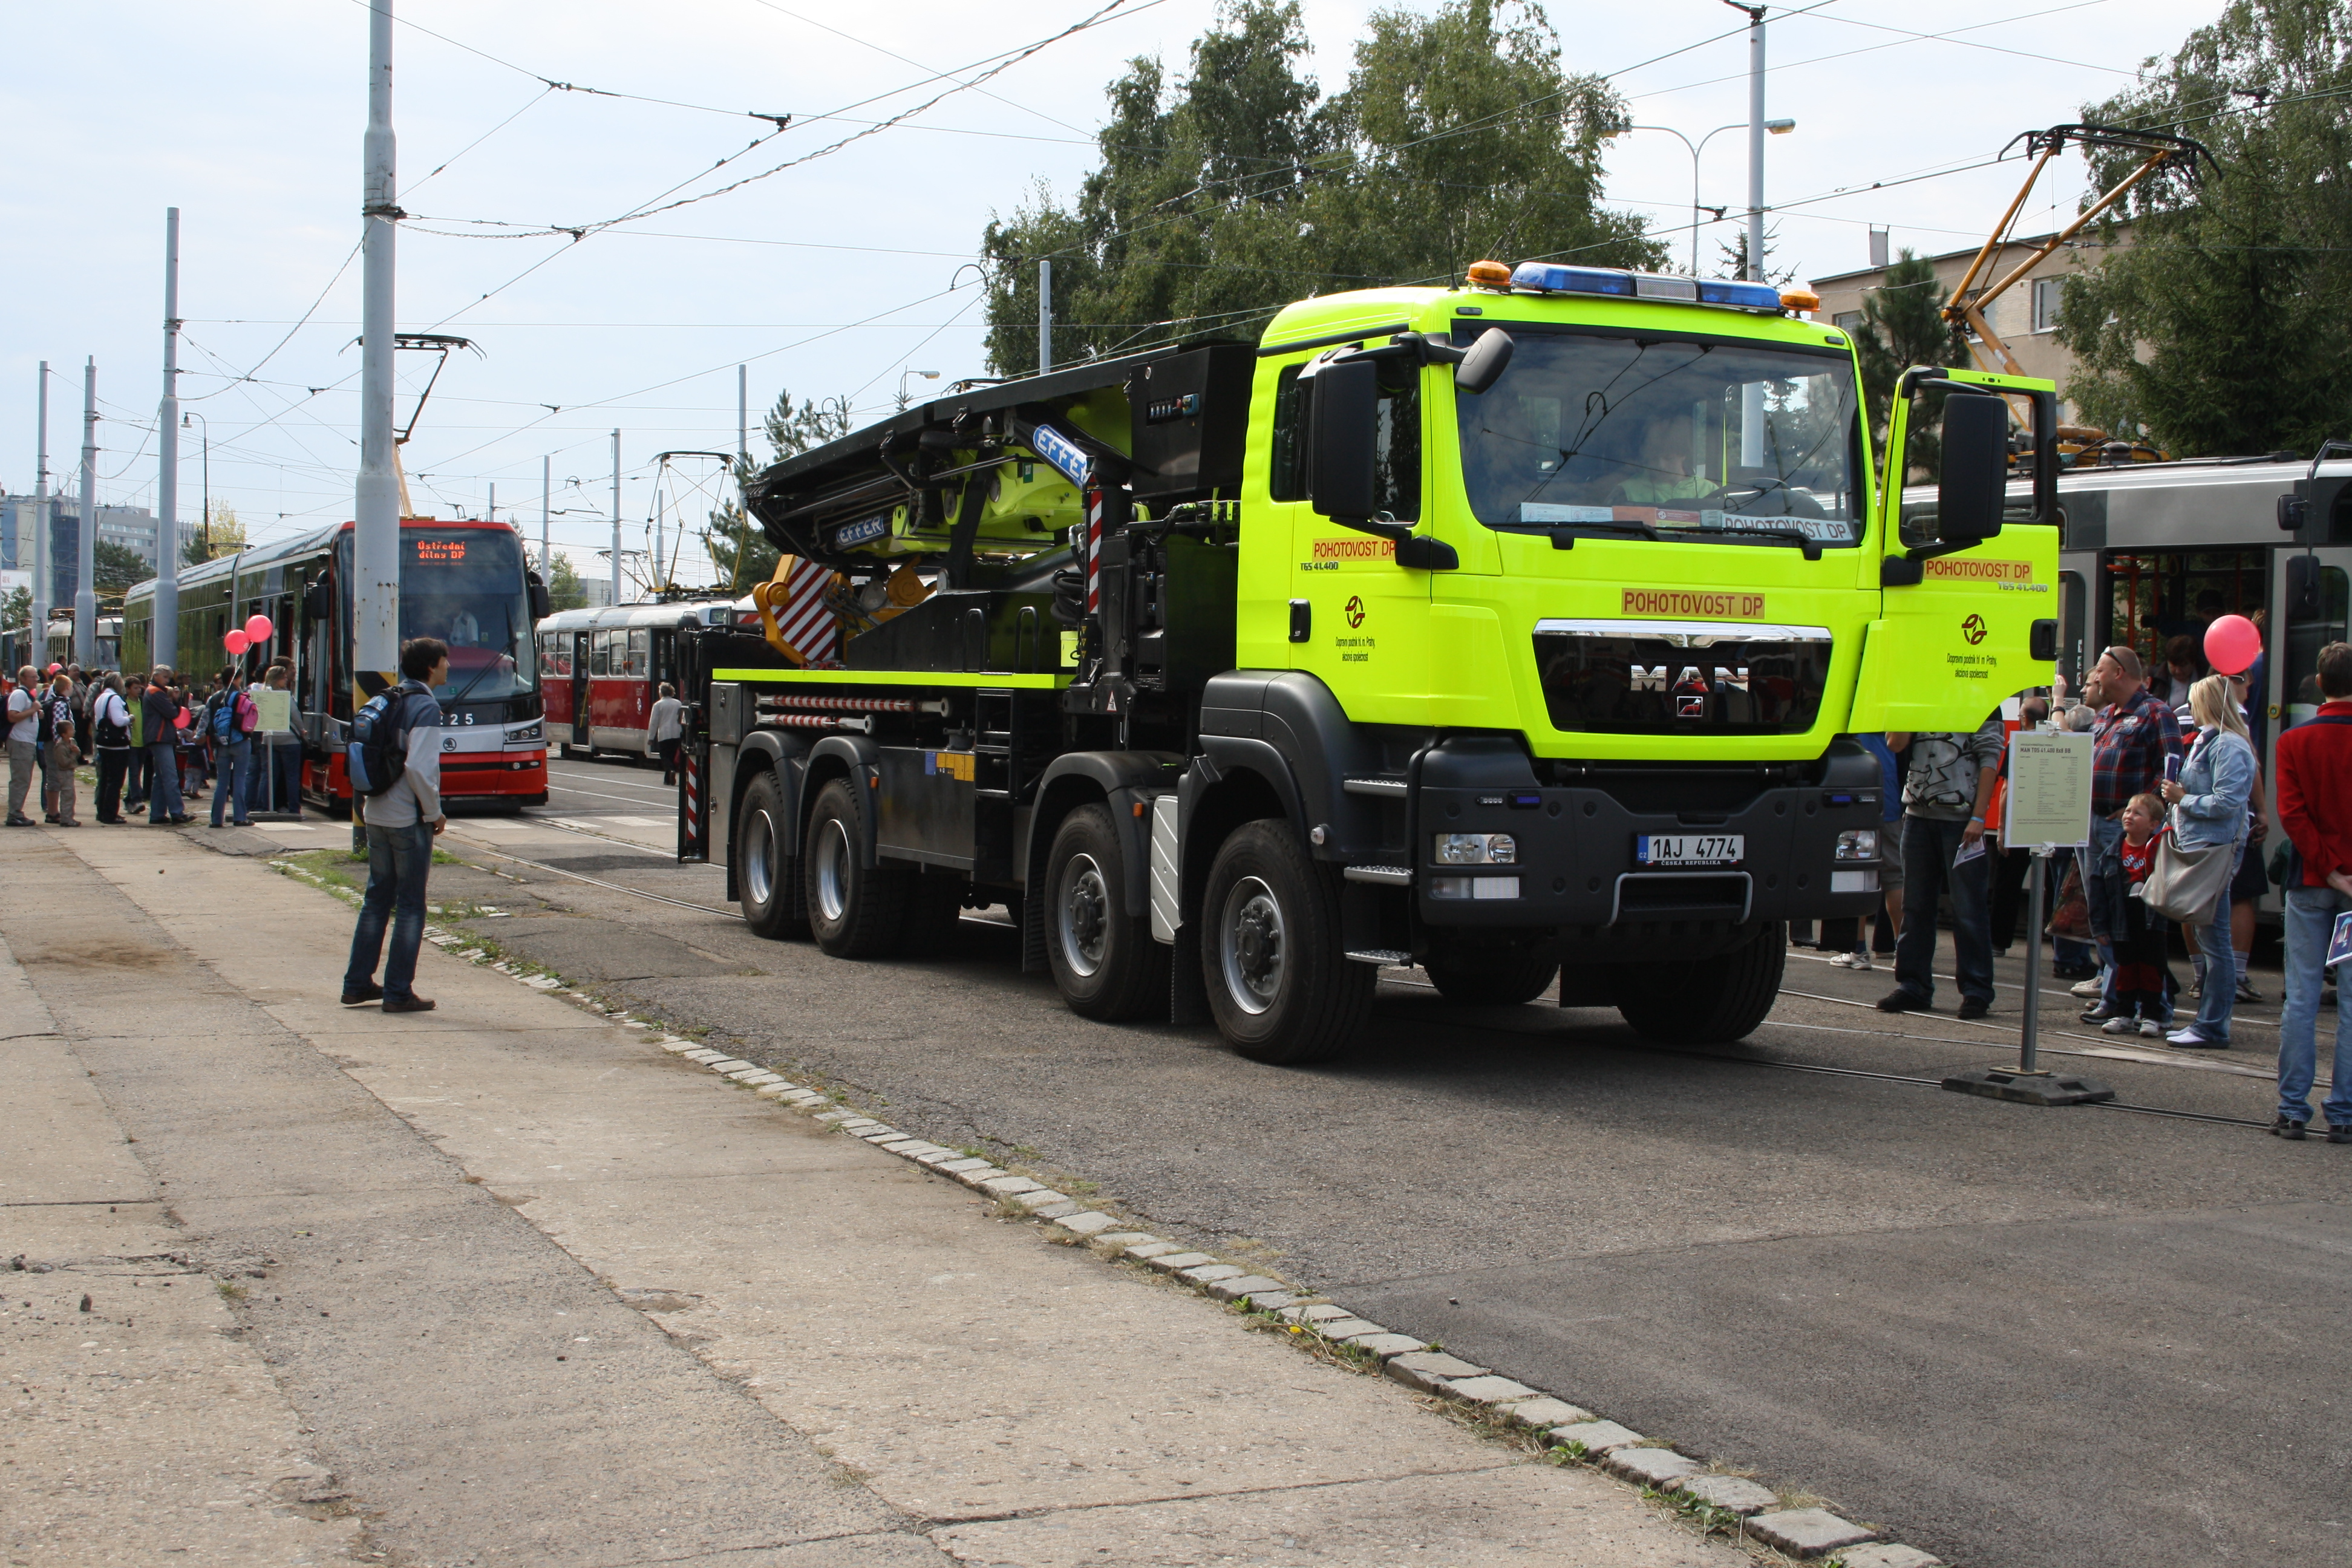 Kabus tow truck tow trucks pinterest tow truck trucks and recovery